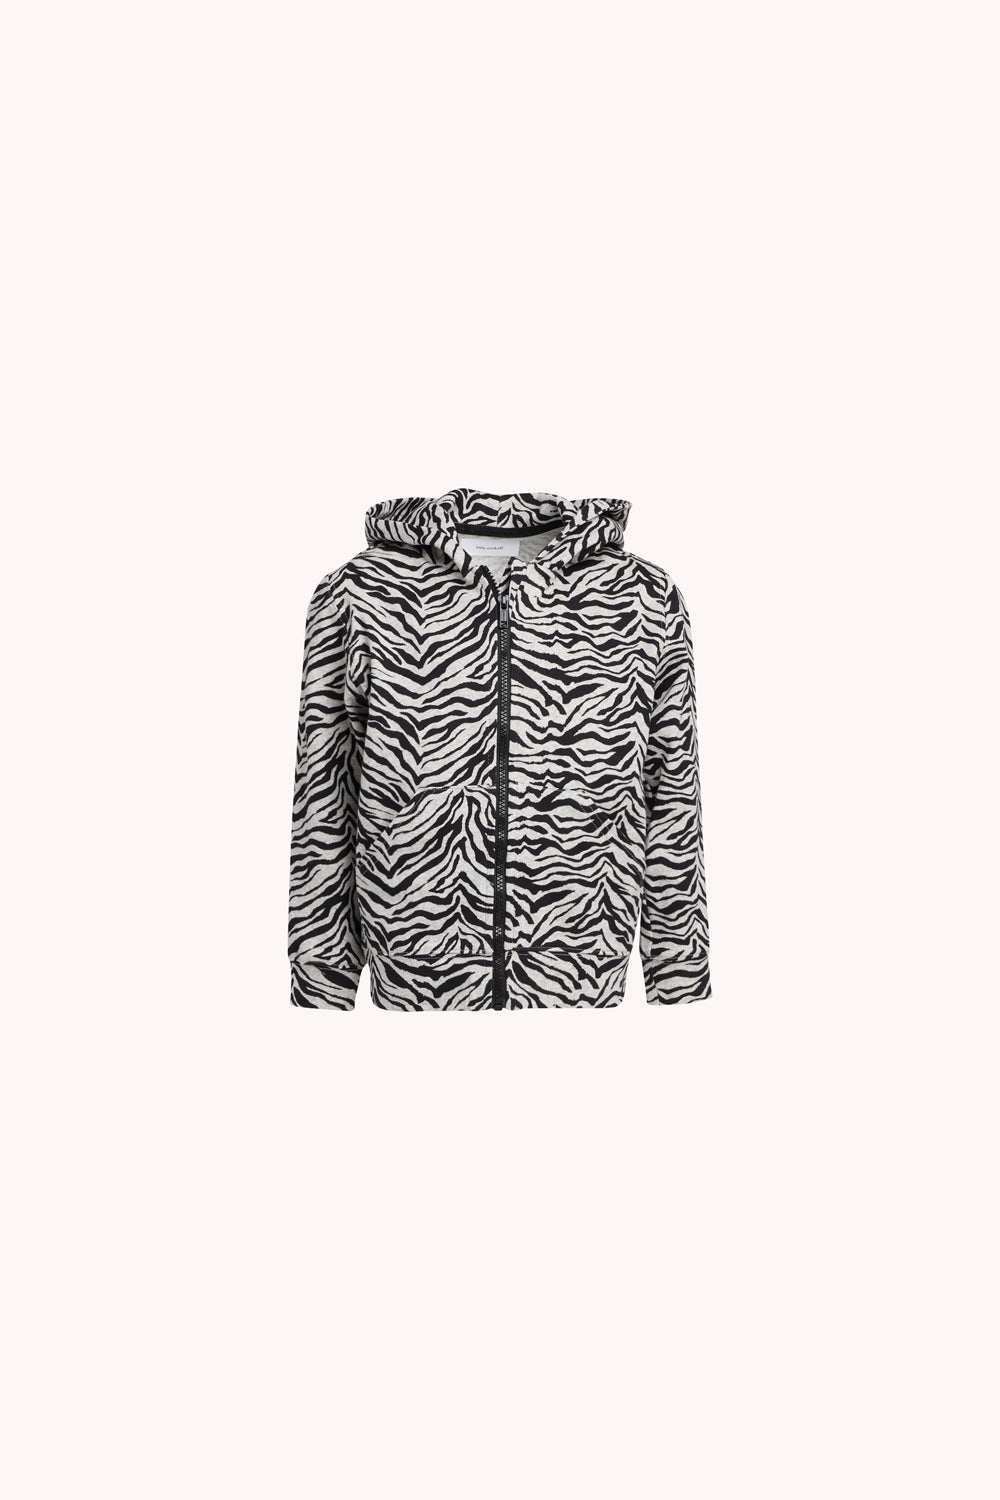 Hoodie | Heather Gray Zebra